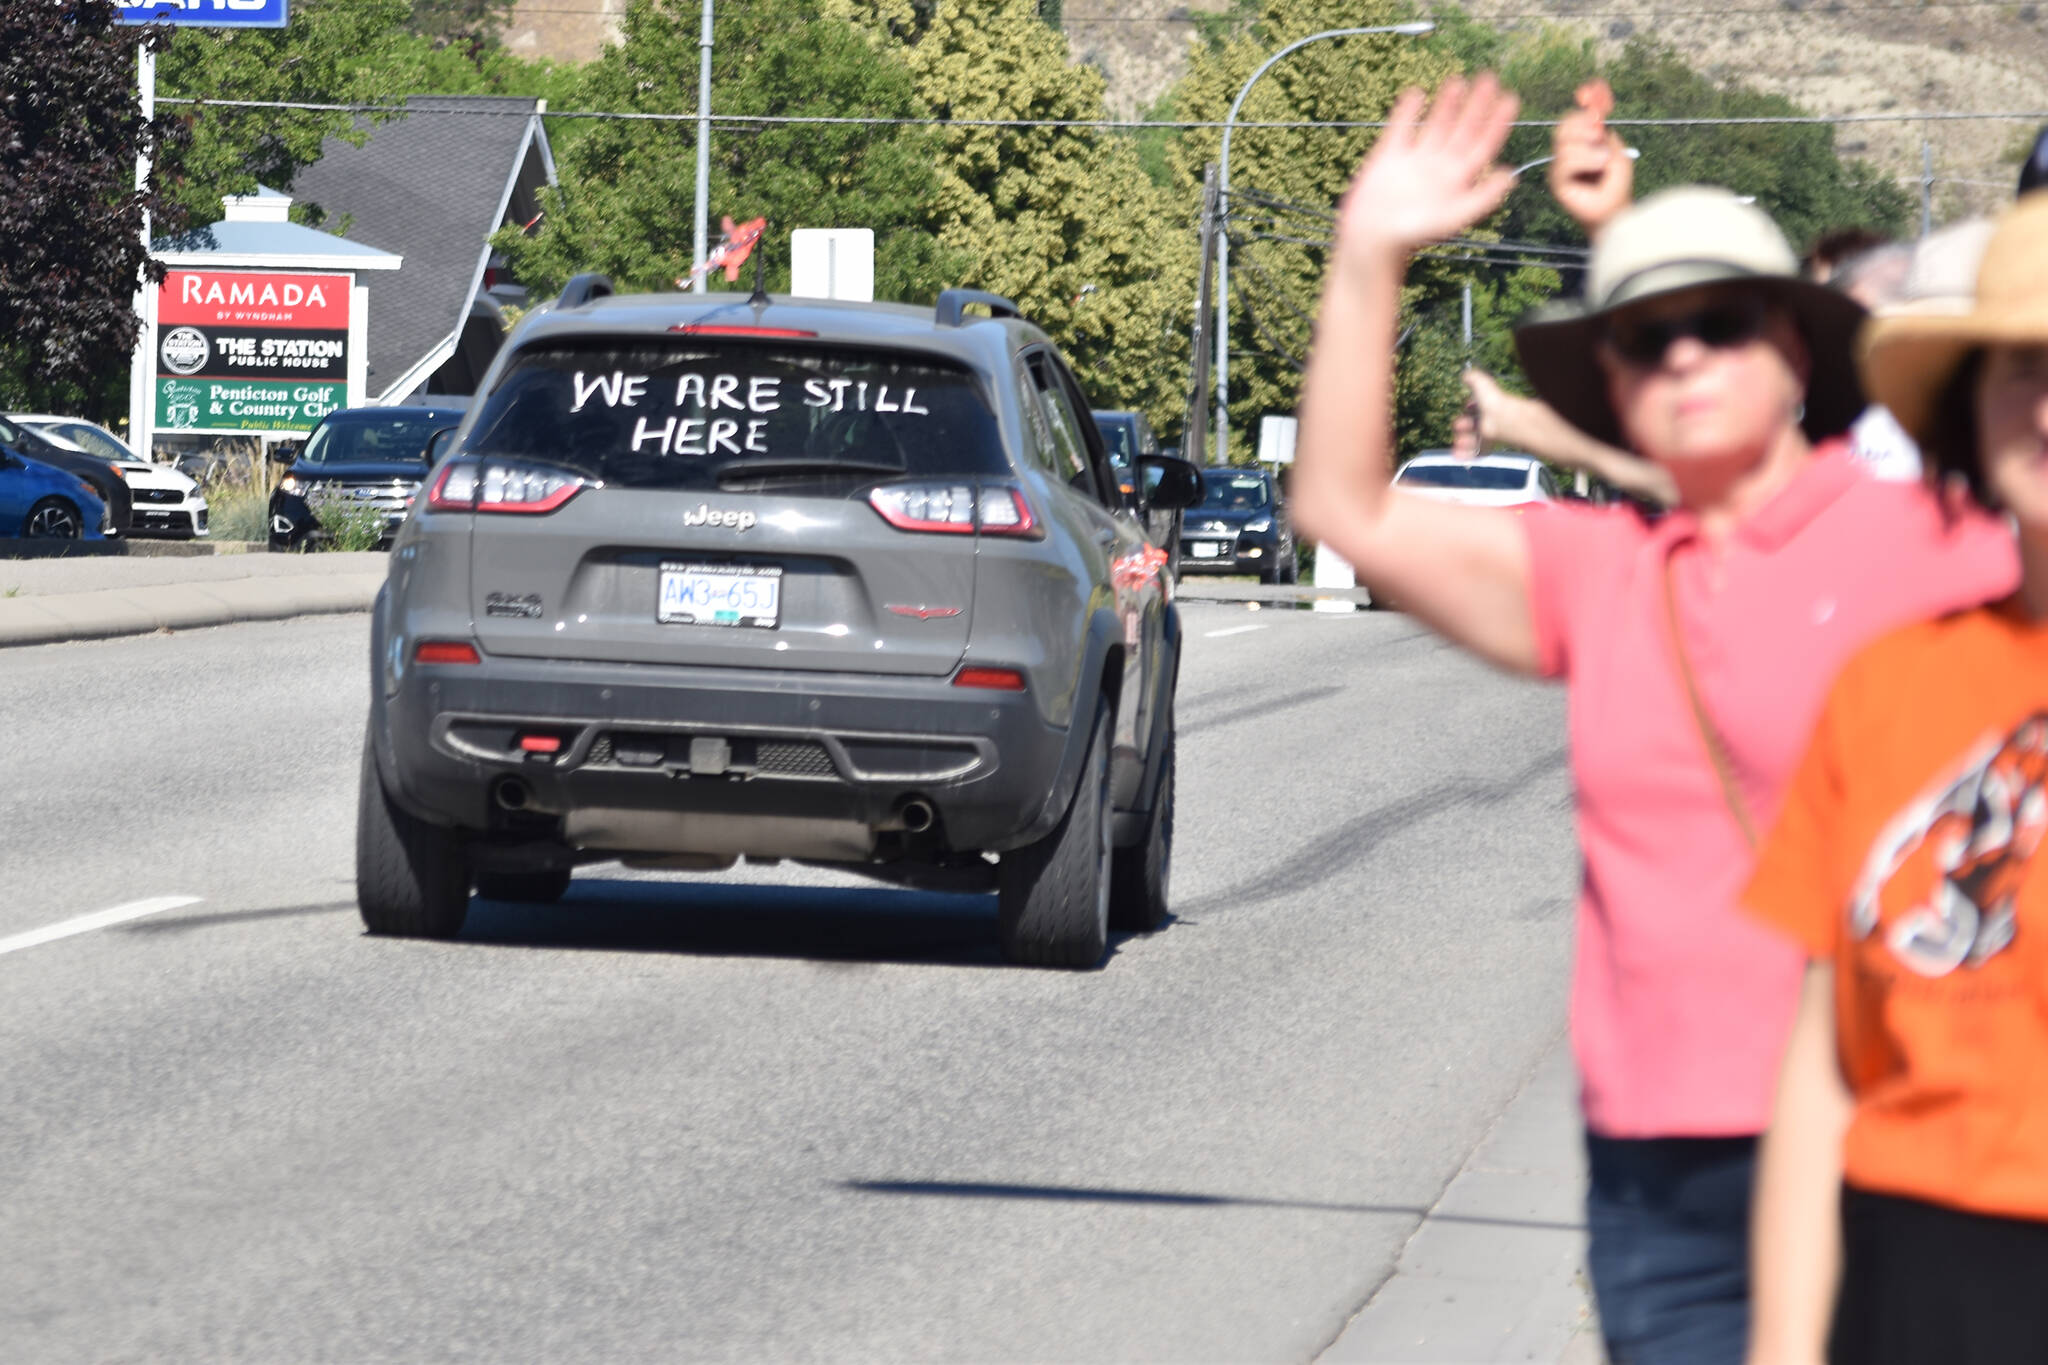 The For the Children Caravan, made up of members of the Syilx Okanagan Nation Alliance's constituent First Nations, including the Lower Similkameen Indian Band, departed from Penticton on June 30 to head to the site of the Kamloops Residential School where 215 children's bodies were uncovered. (Brennan Phillips - Western News)